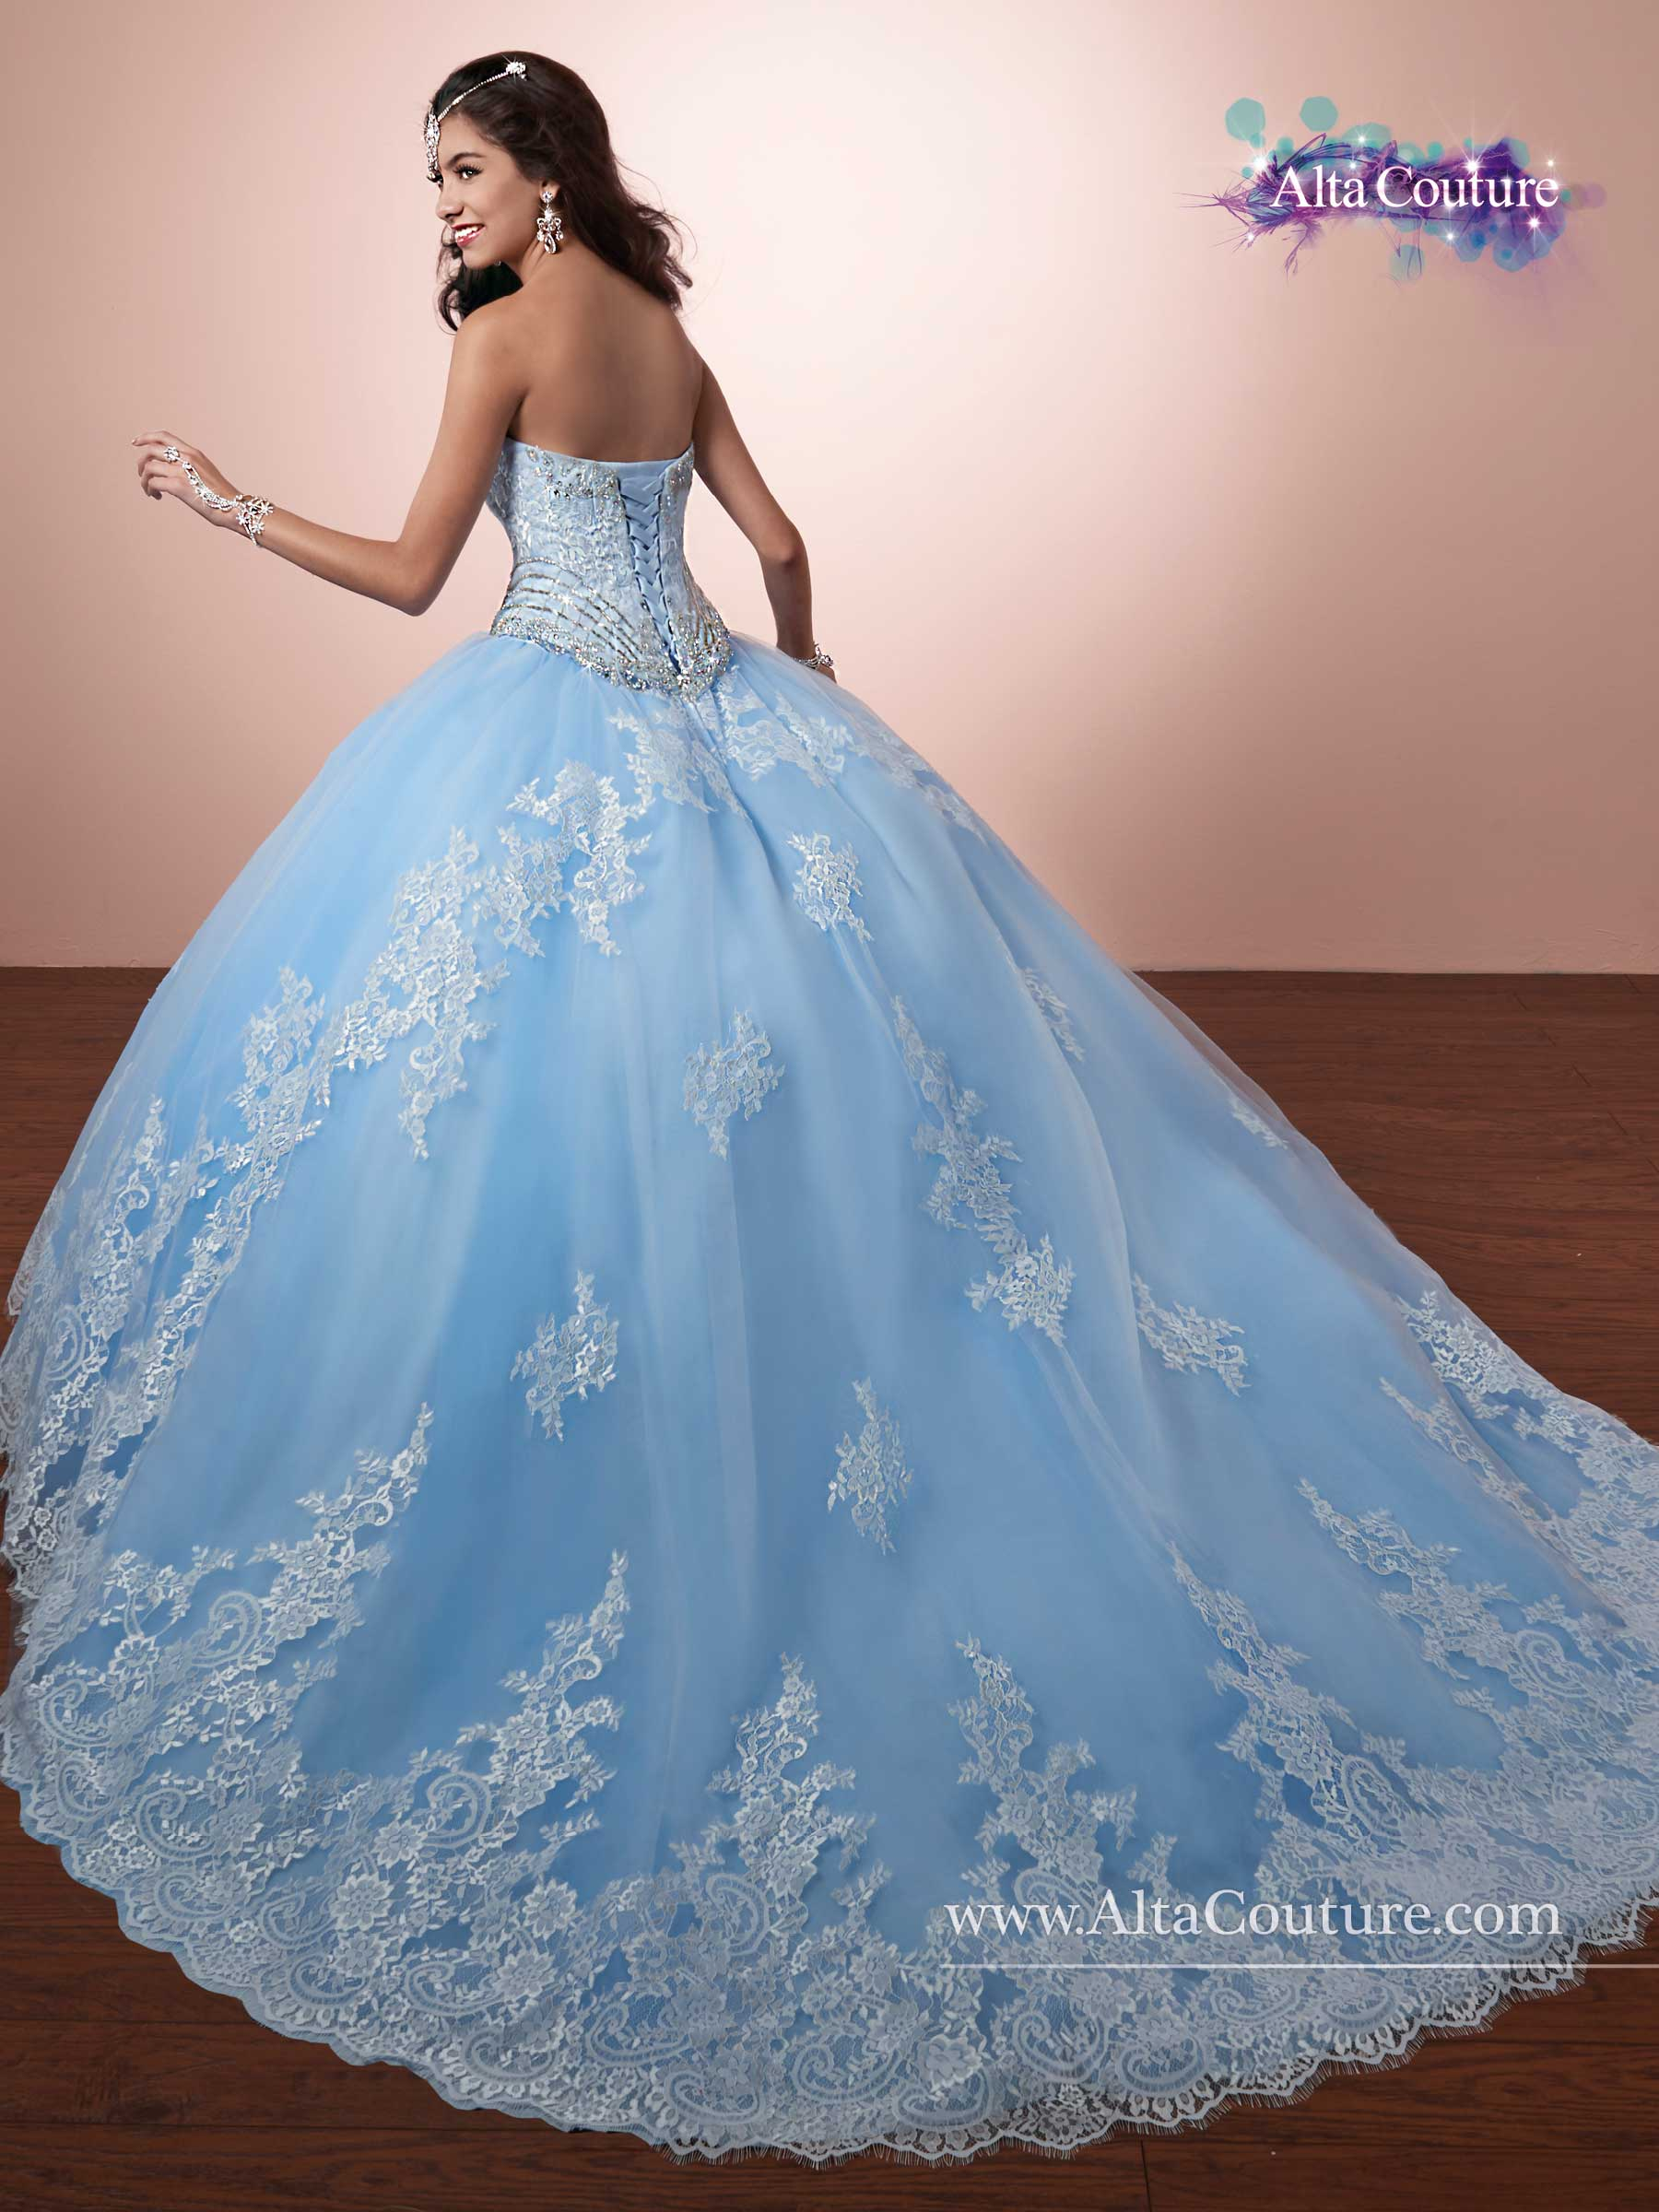 Quinceanera Couture Dresses Style 4t171 In Light Blue